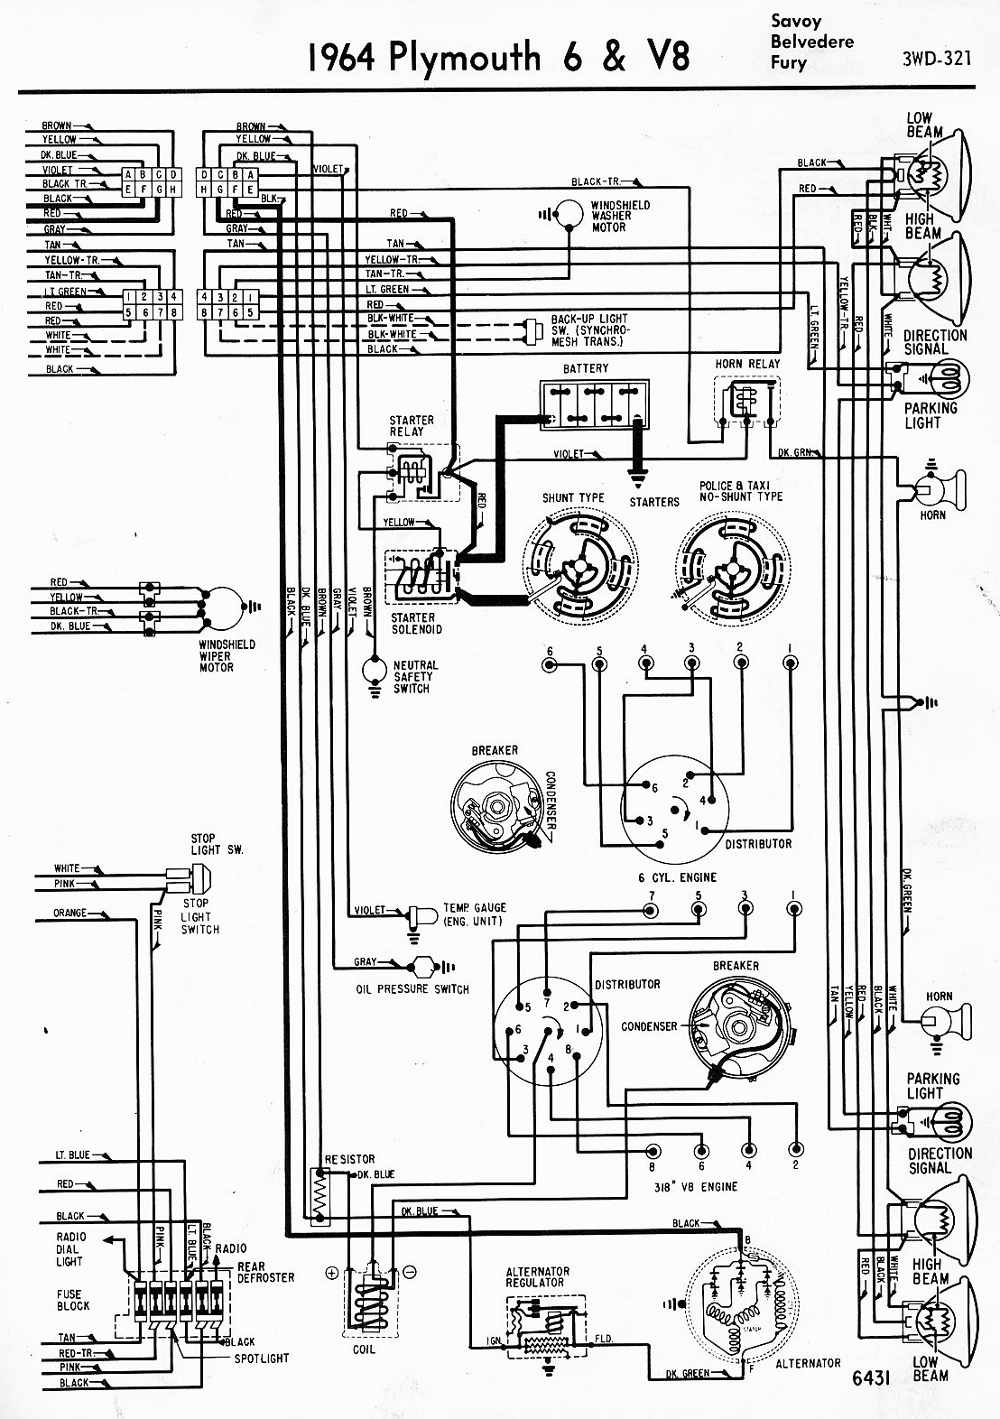 1969 plymouth fury convertible wiring diagram wiring diagram 1962 Plymouth Fury 1969 plymouth fury convertible wiring diagram wiring diagram1969 plymouth fury wiring diagram all wiring diagram1974 plymouth